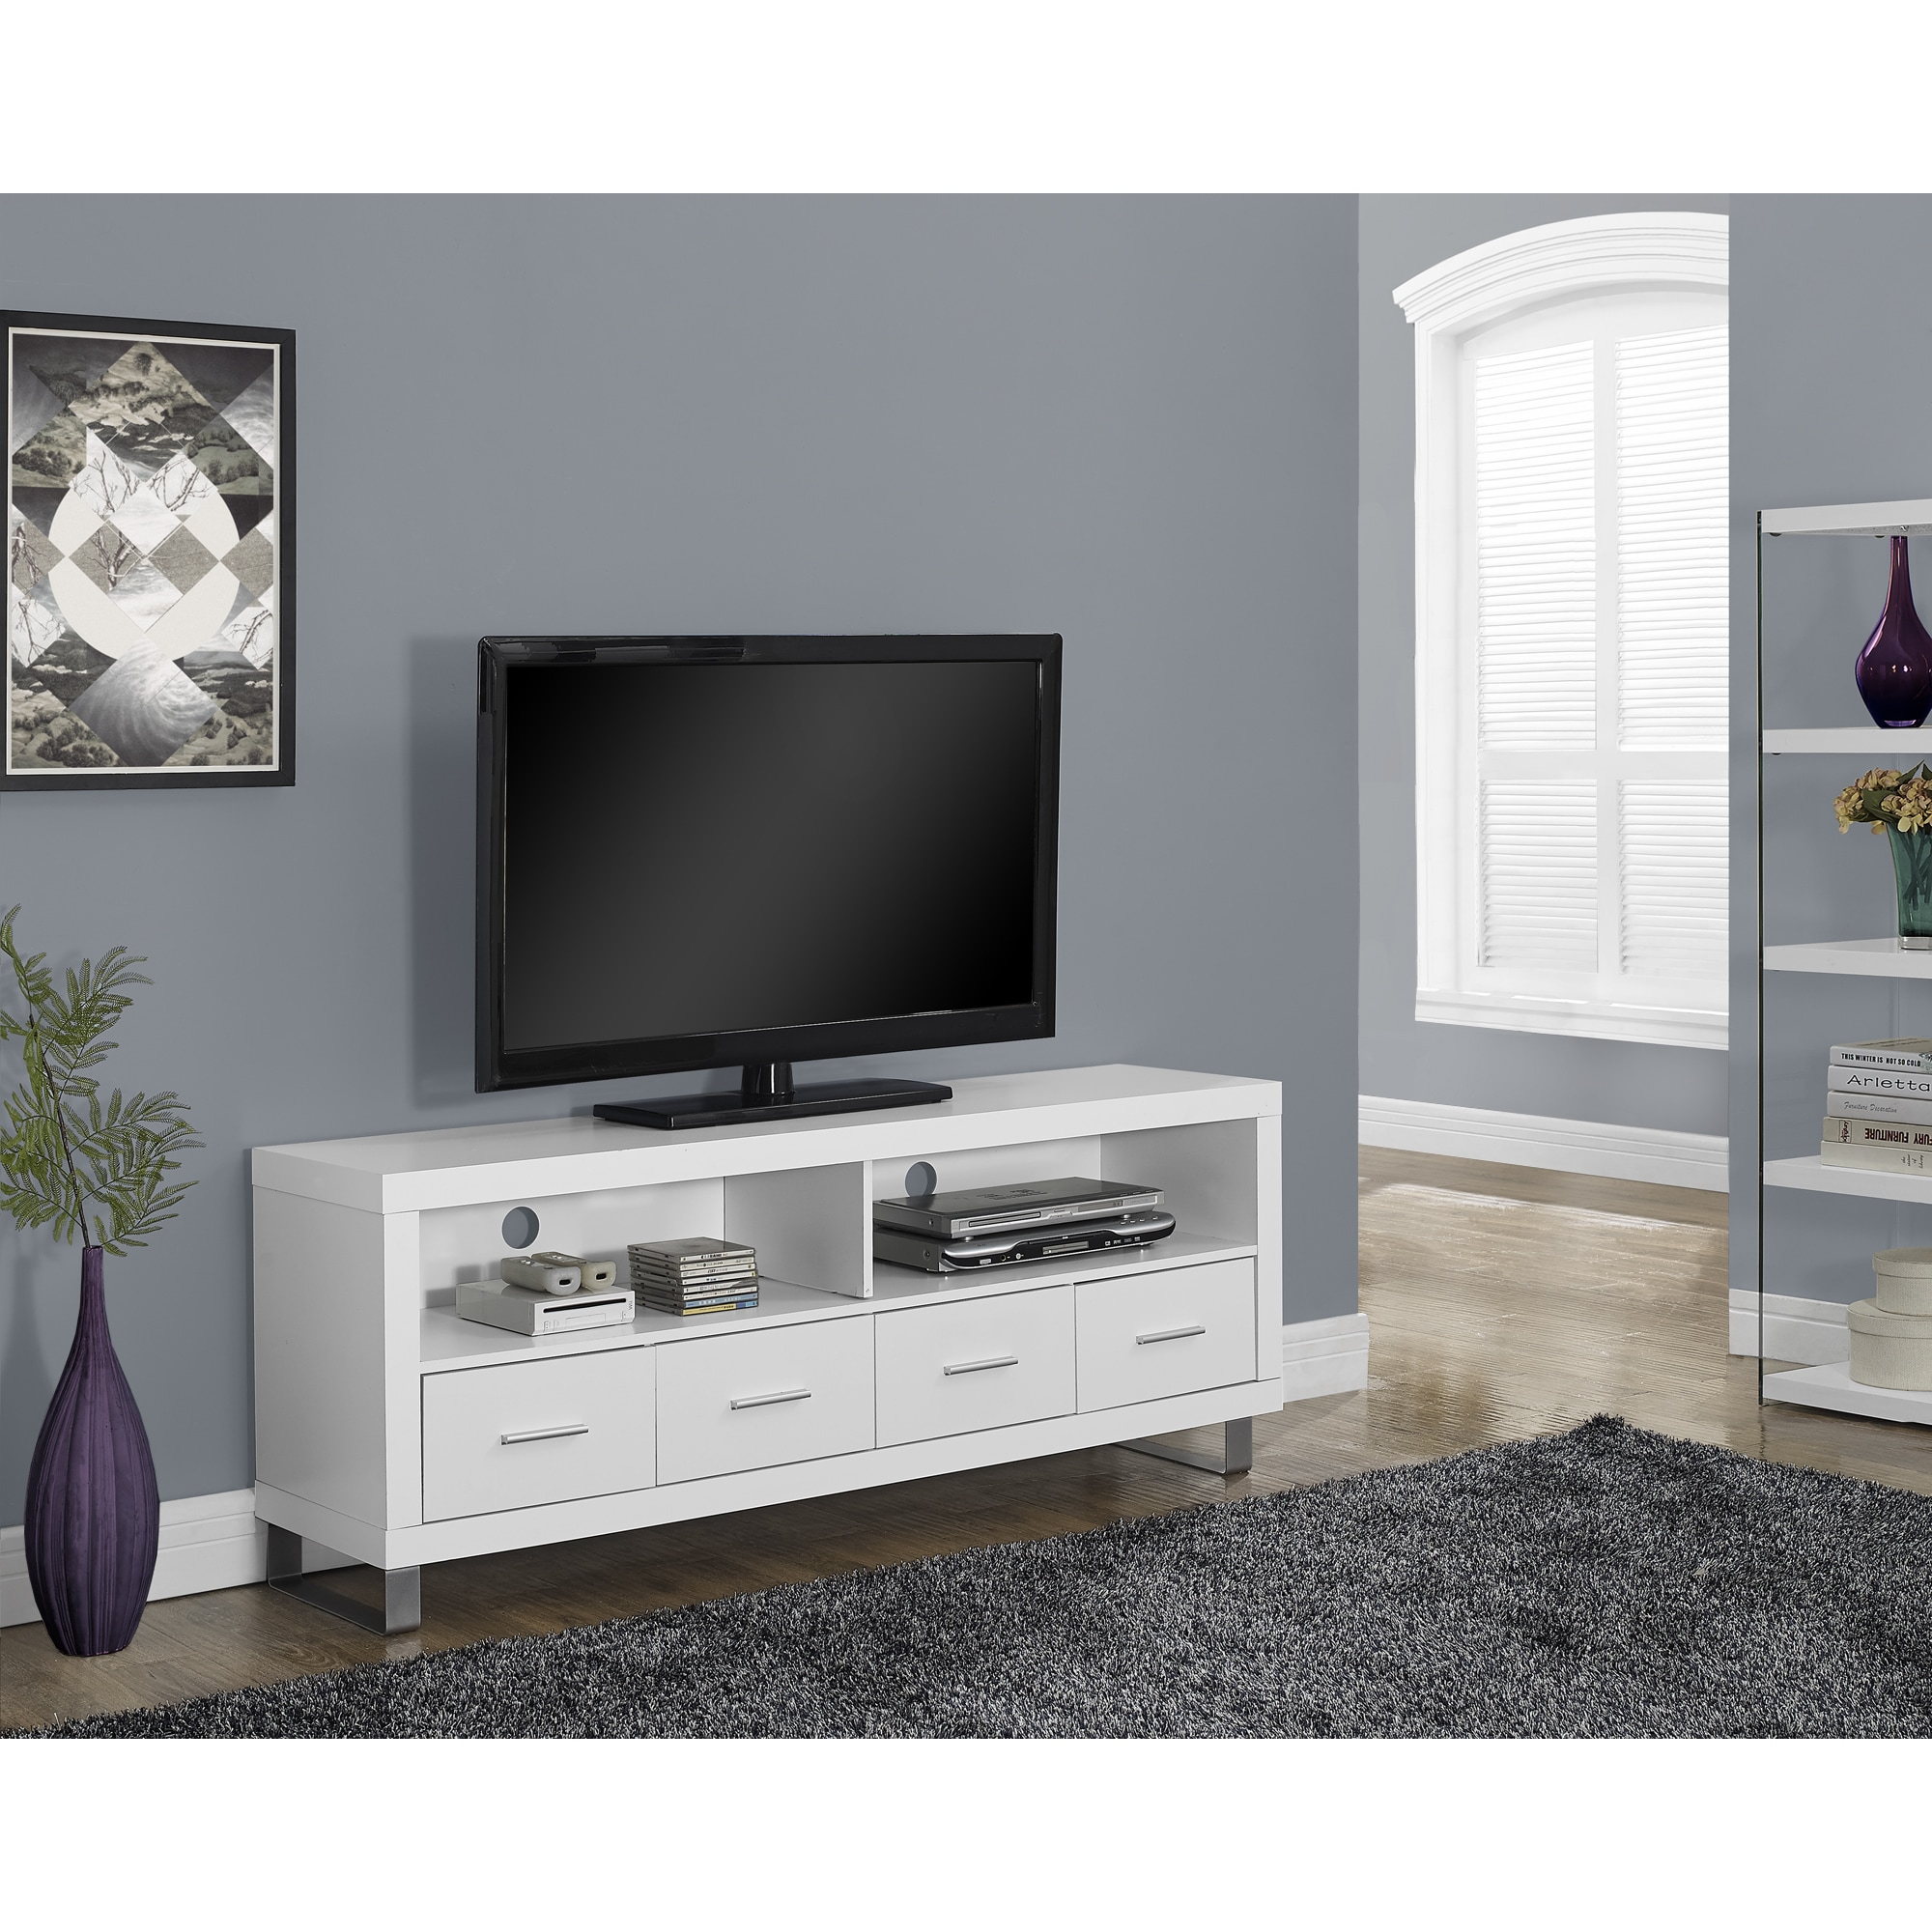 Shop White Hollow Core 60 Inch 4 Drawer TV